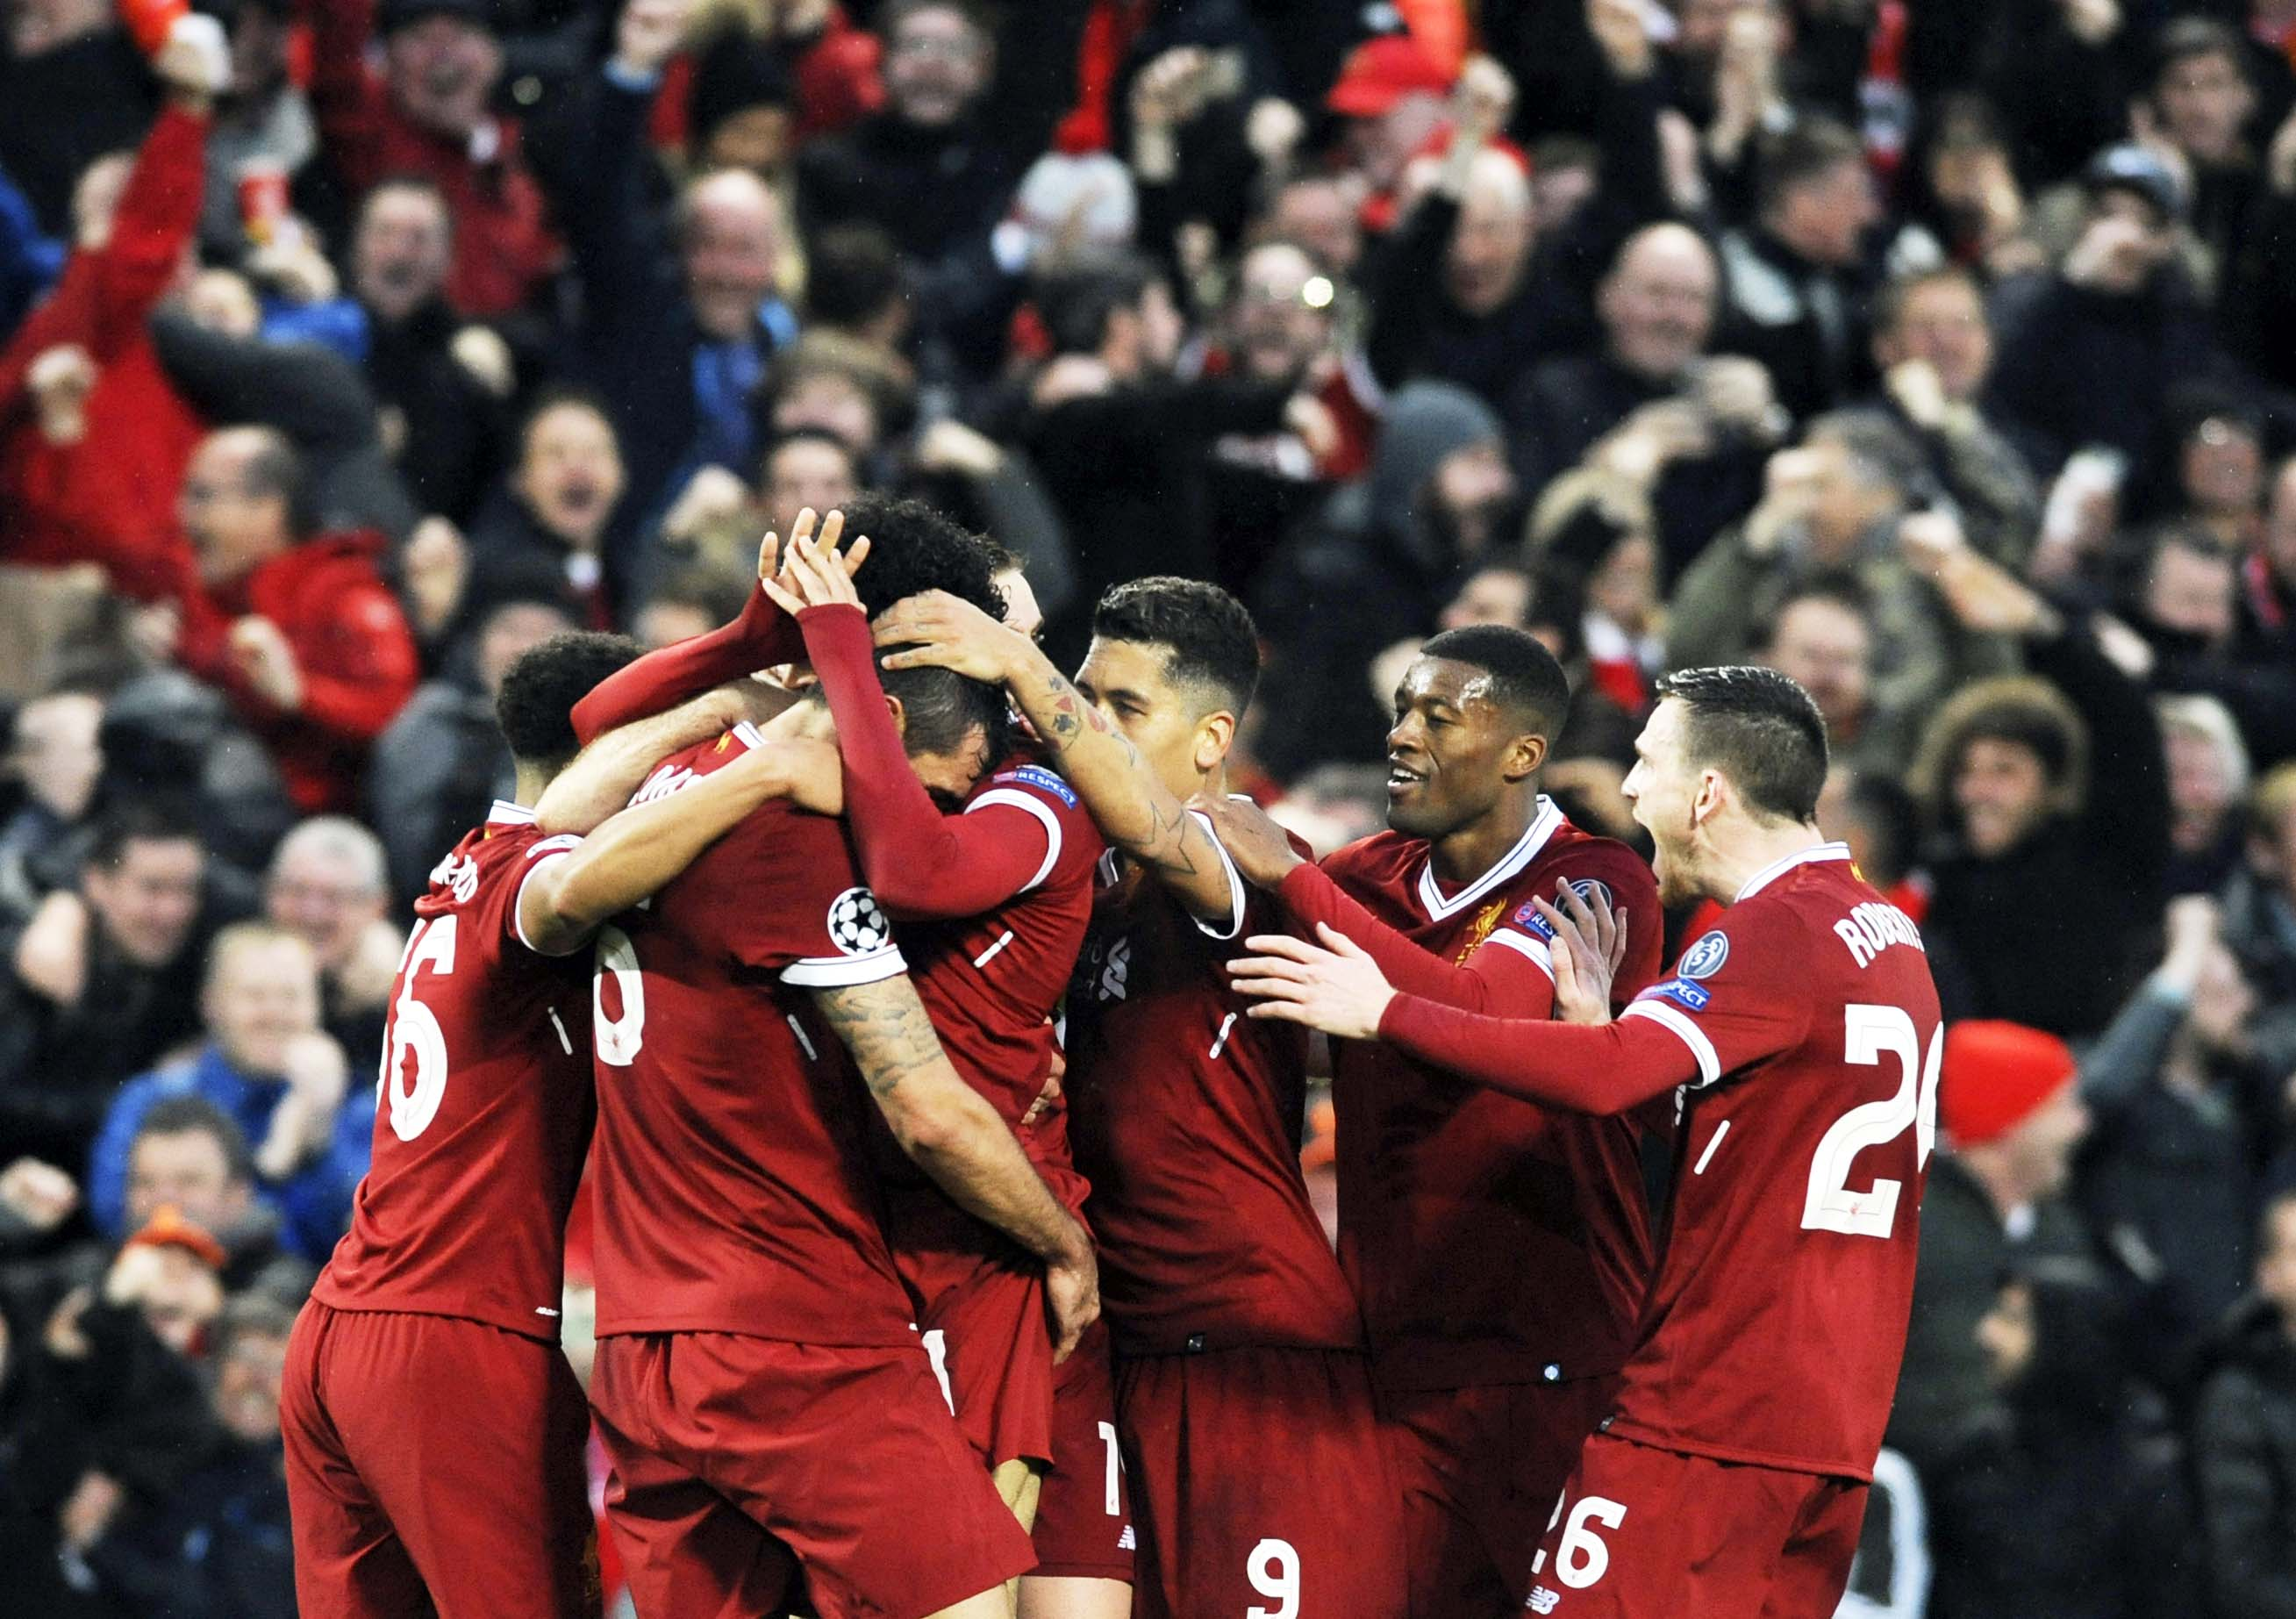 Liverpool`s Mohamed Salah celebrates with teammates after scoring his side's opening goal during the Champions League semifinal, first leg, soccer match between Liverpool and Roma at Anfield Stadium in Liverpool, England on Tuesday.